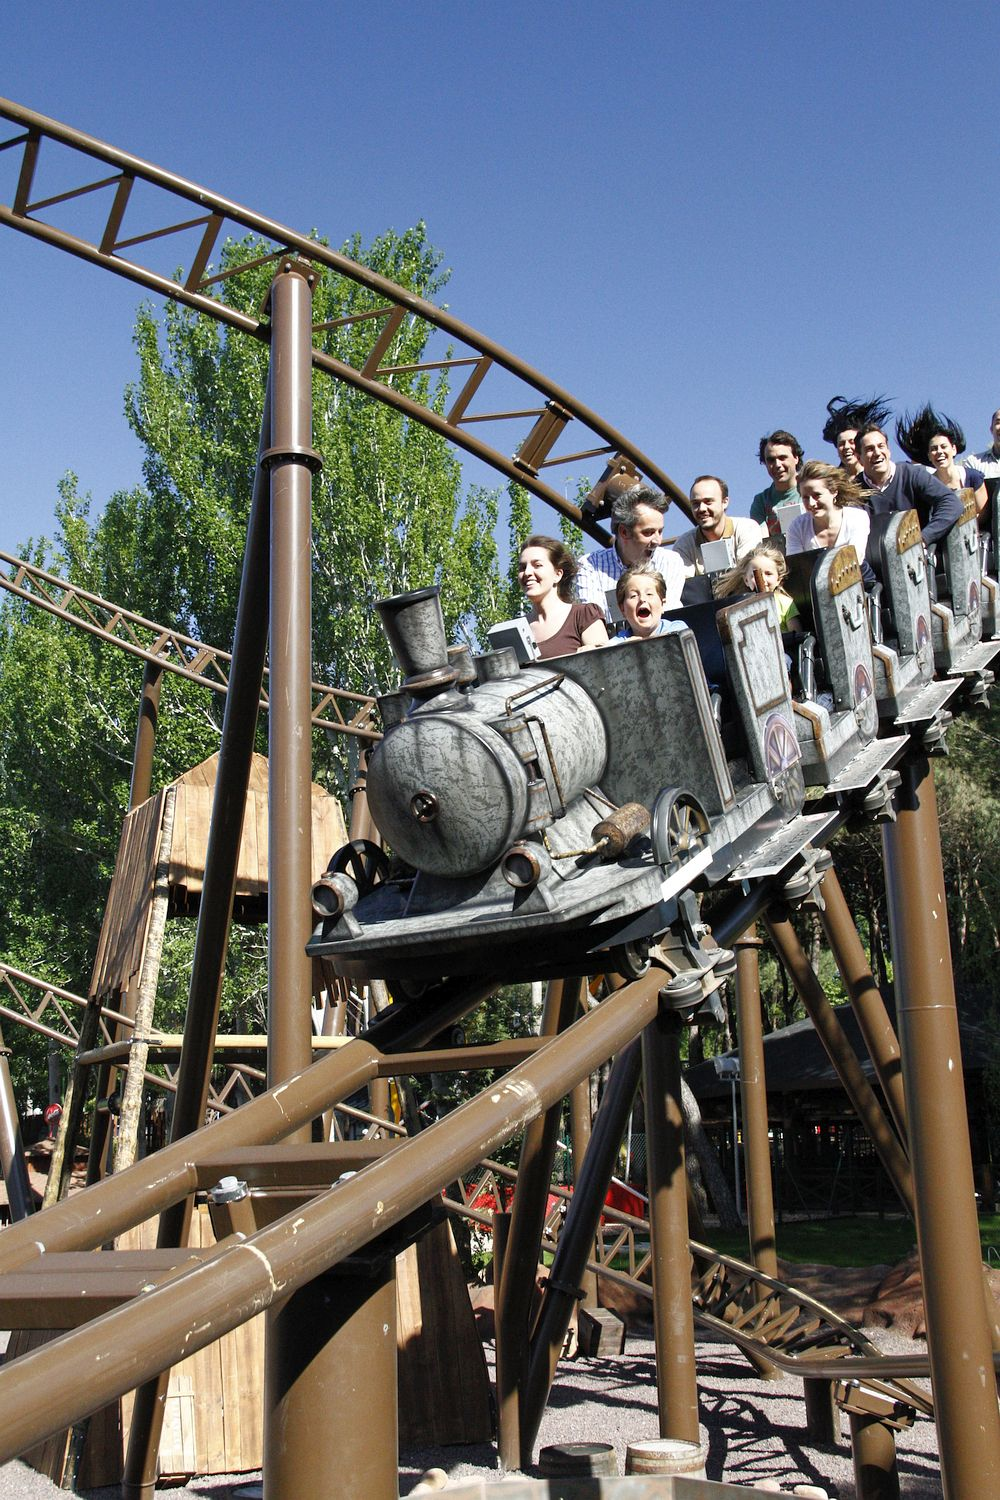 Rollercoaster in Madrid